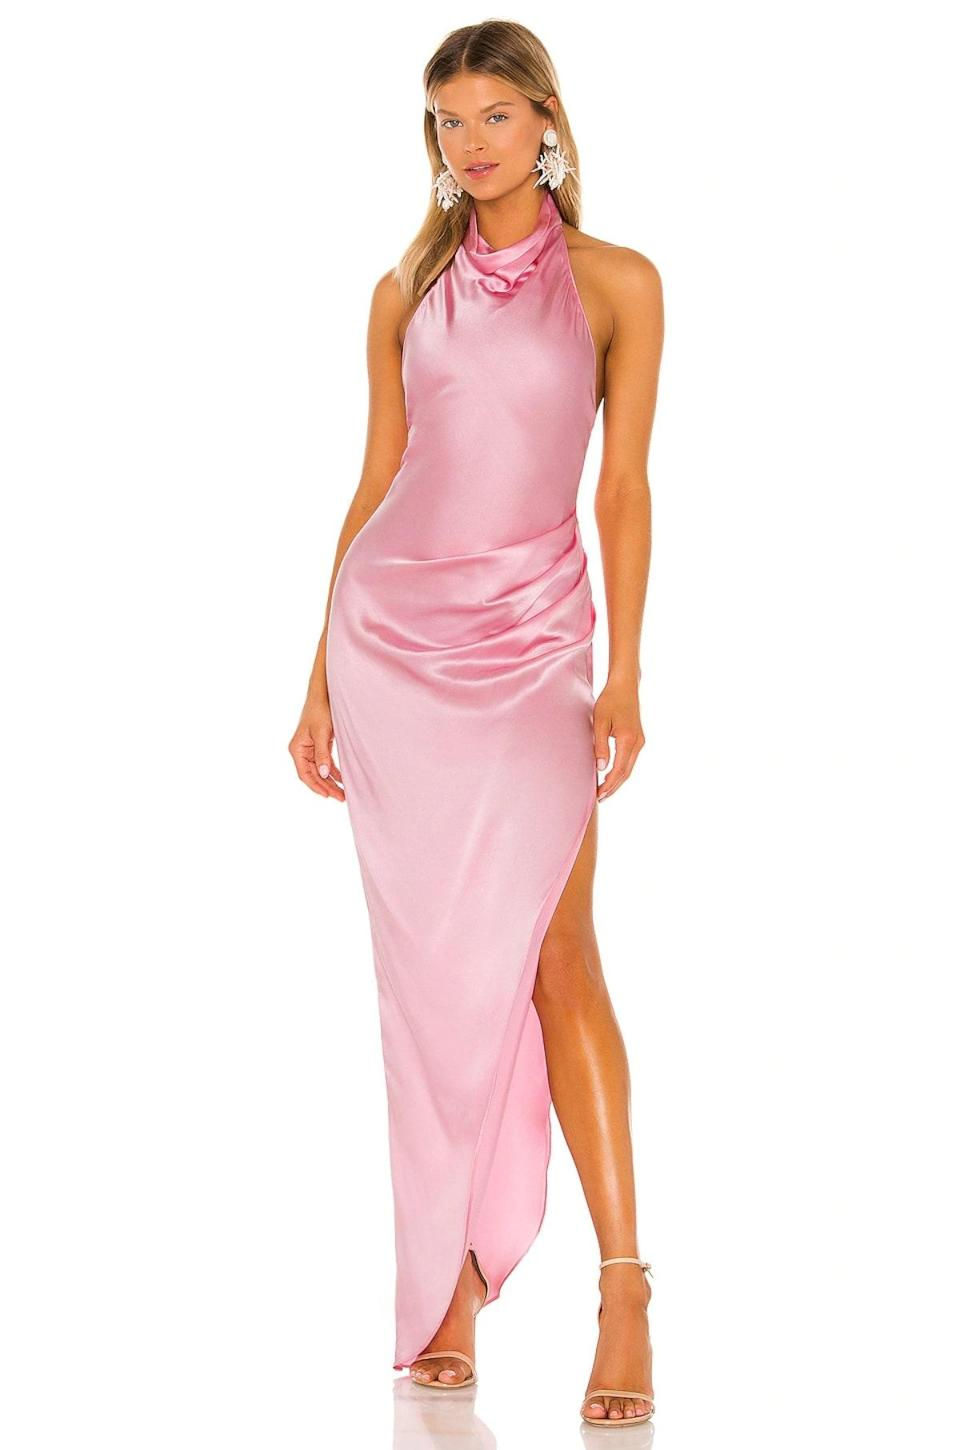 """You can keep your glam and accessories to a minimum here. Between the thigh slit, the high-neck cowl, and the subtle hip draping, this bubblegum pink gown is doing <em>all</em> the work. $321, Revolve. <a href=""""https://www.revolve.com/amanda-uprichard-x-revolve-samba-gown/dp/AMAN-WD1277/"""" rel=""""nofollow noopener"""" target=""""_blank"""" data-ylk=""""slk:Get it now!"""" class=""""link rapid-noclick-resp"""">Get it now!</a>"""